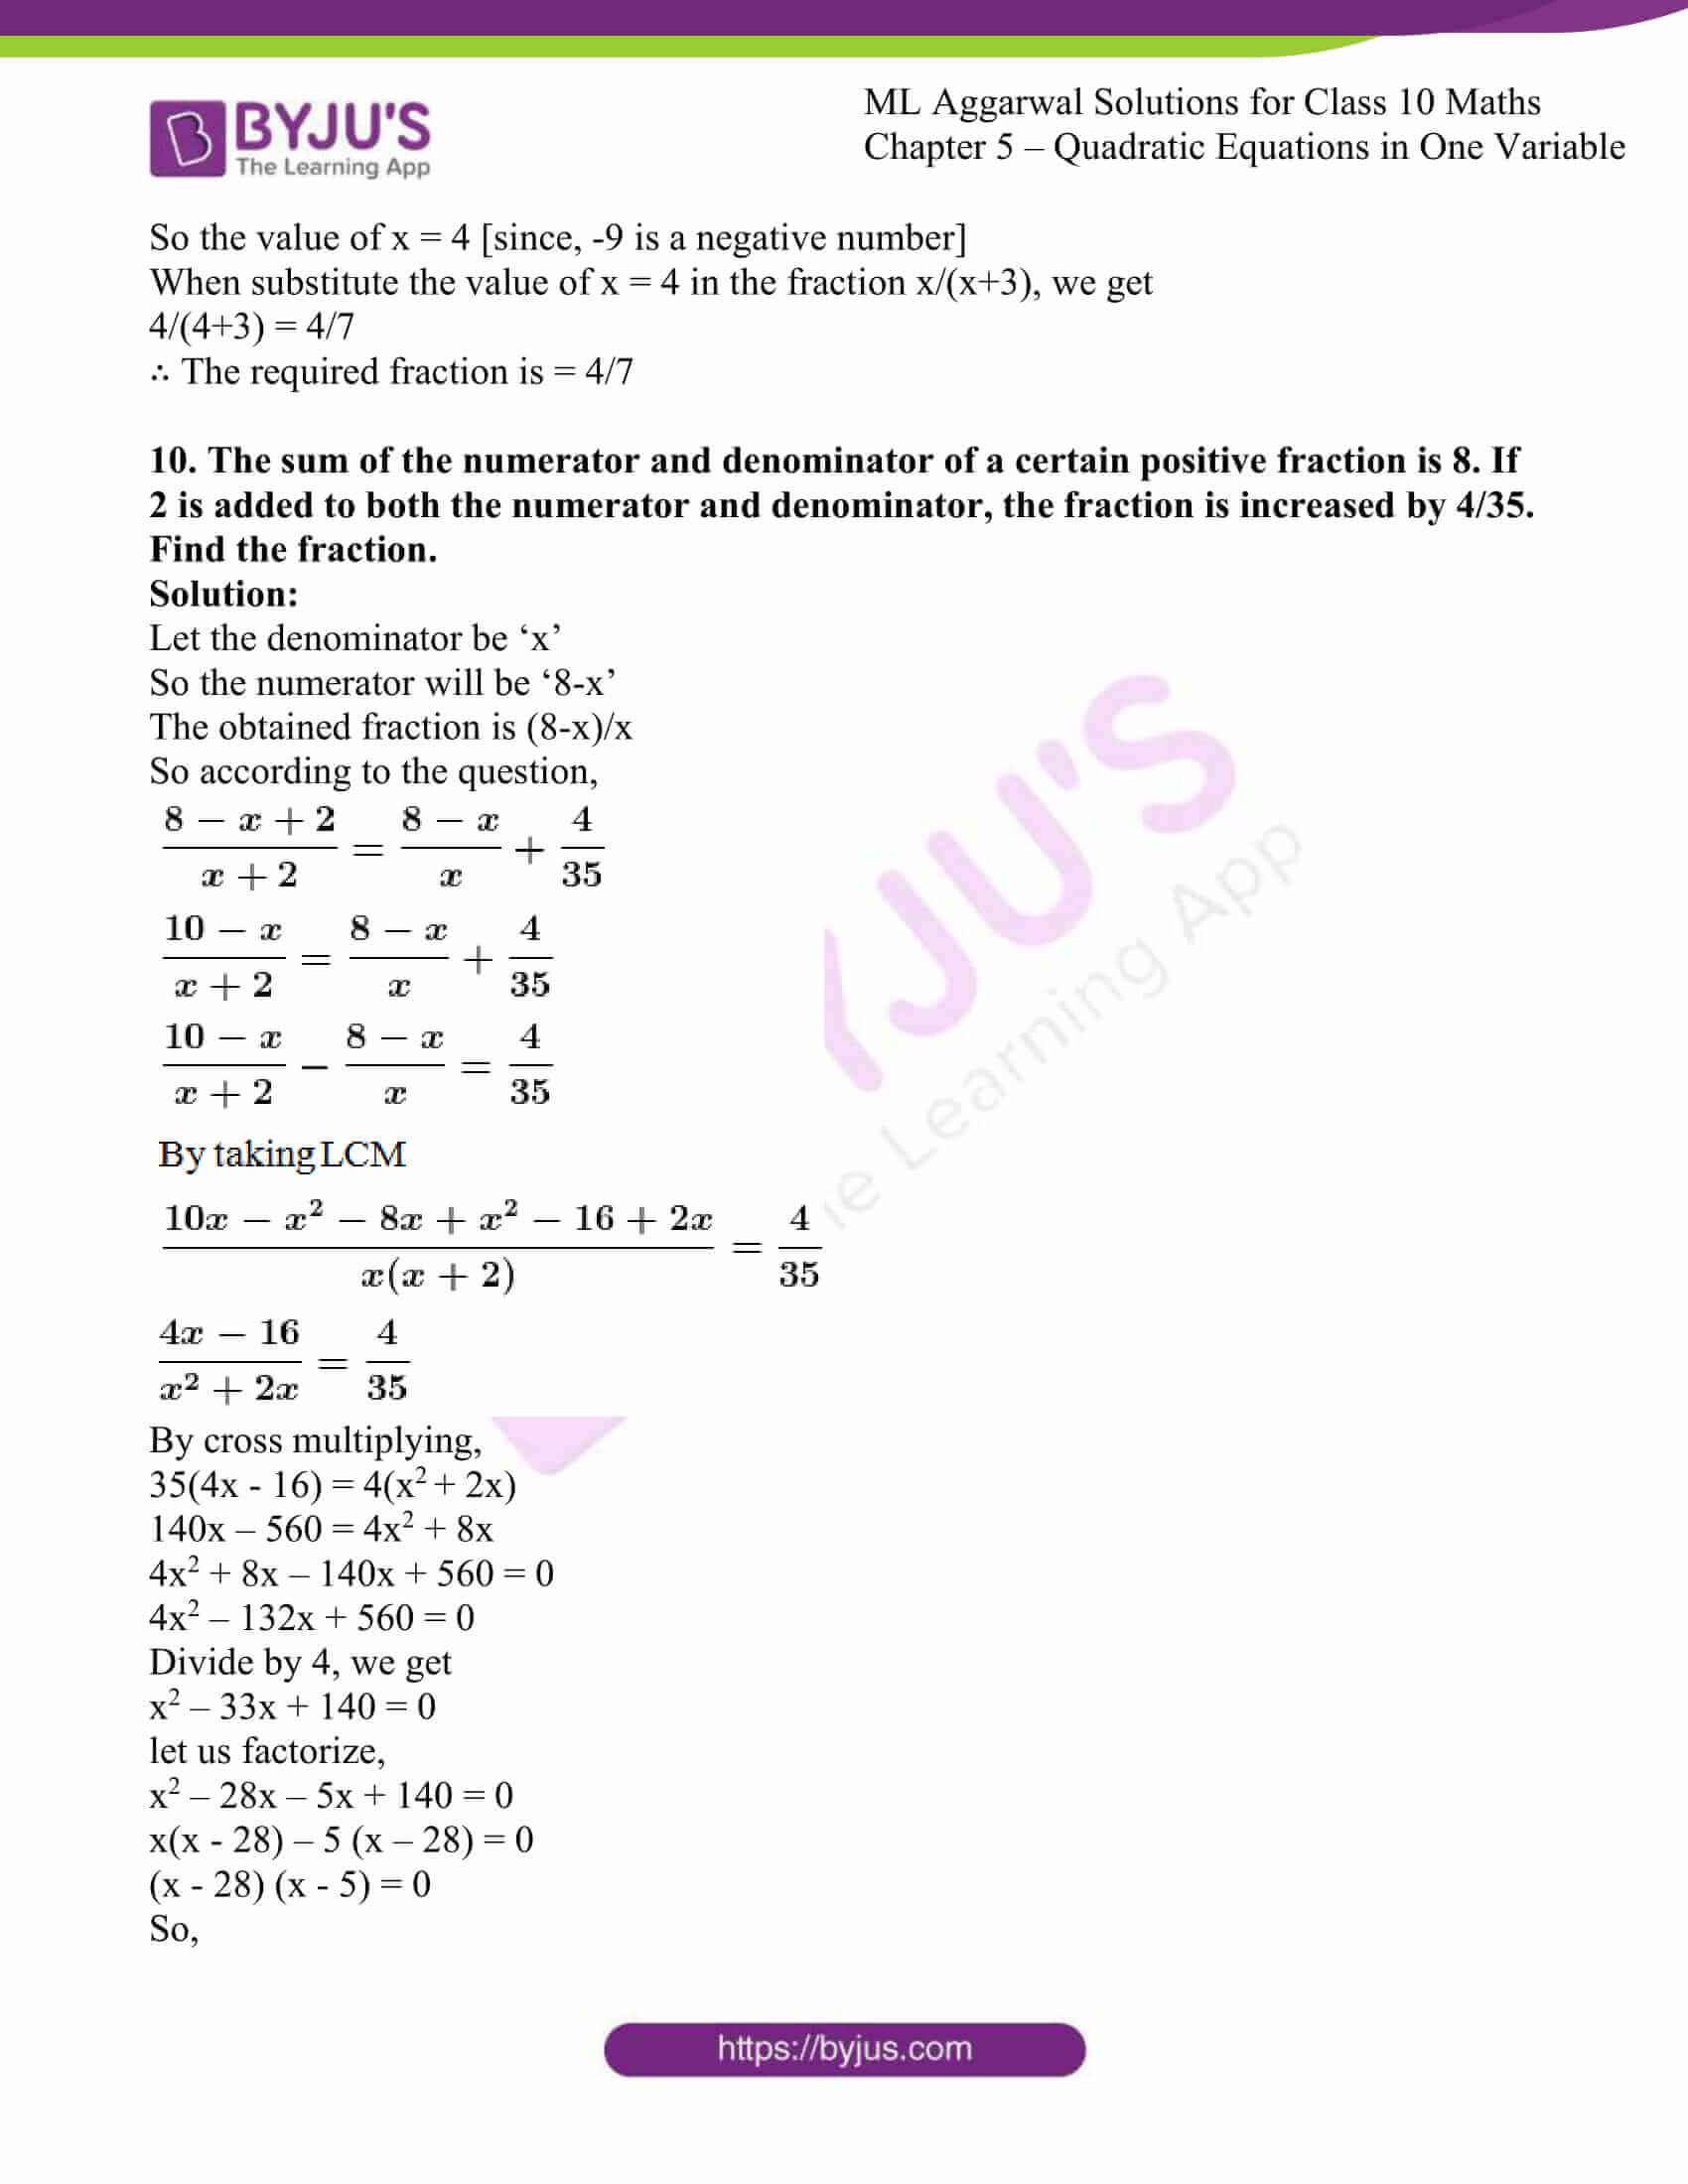 ml aggarwal solutions class 10 maths chapter 5 59